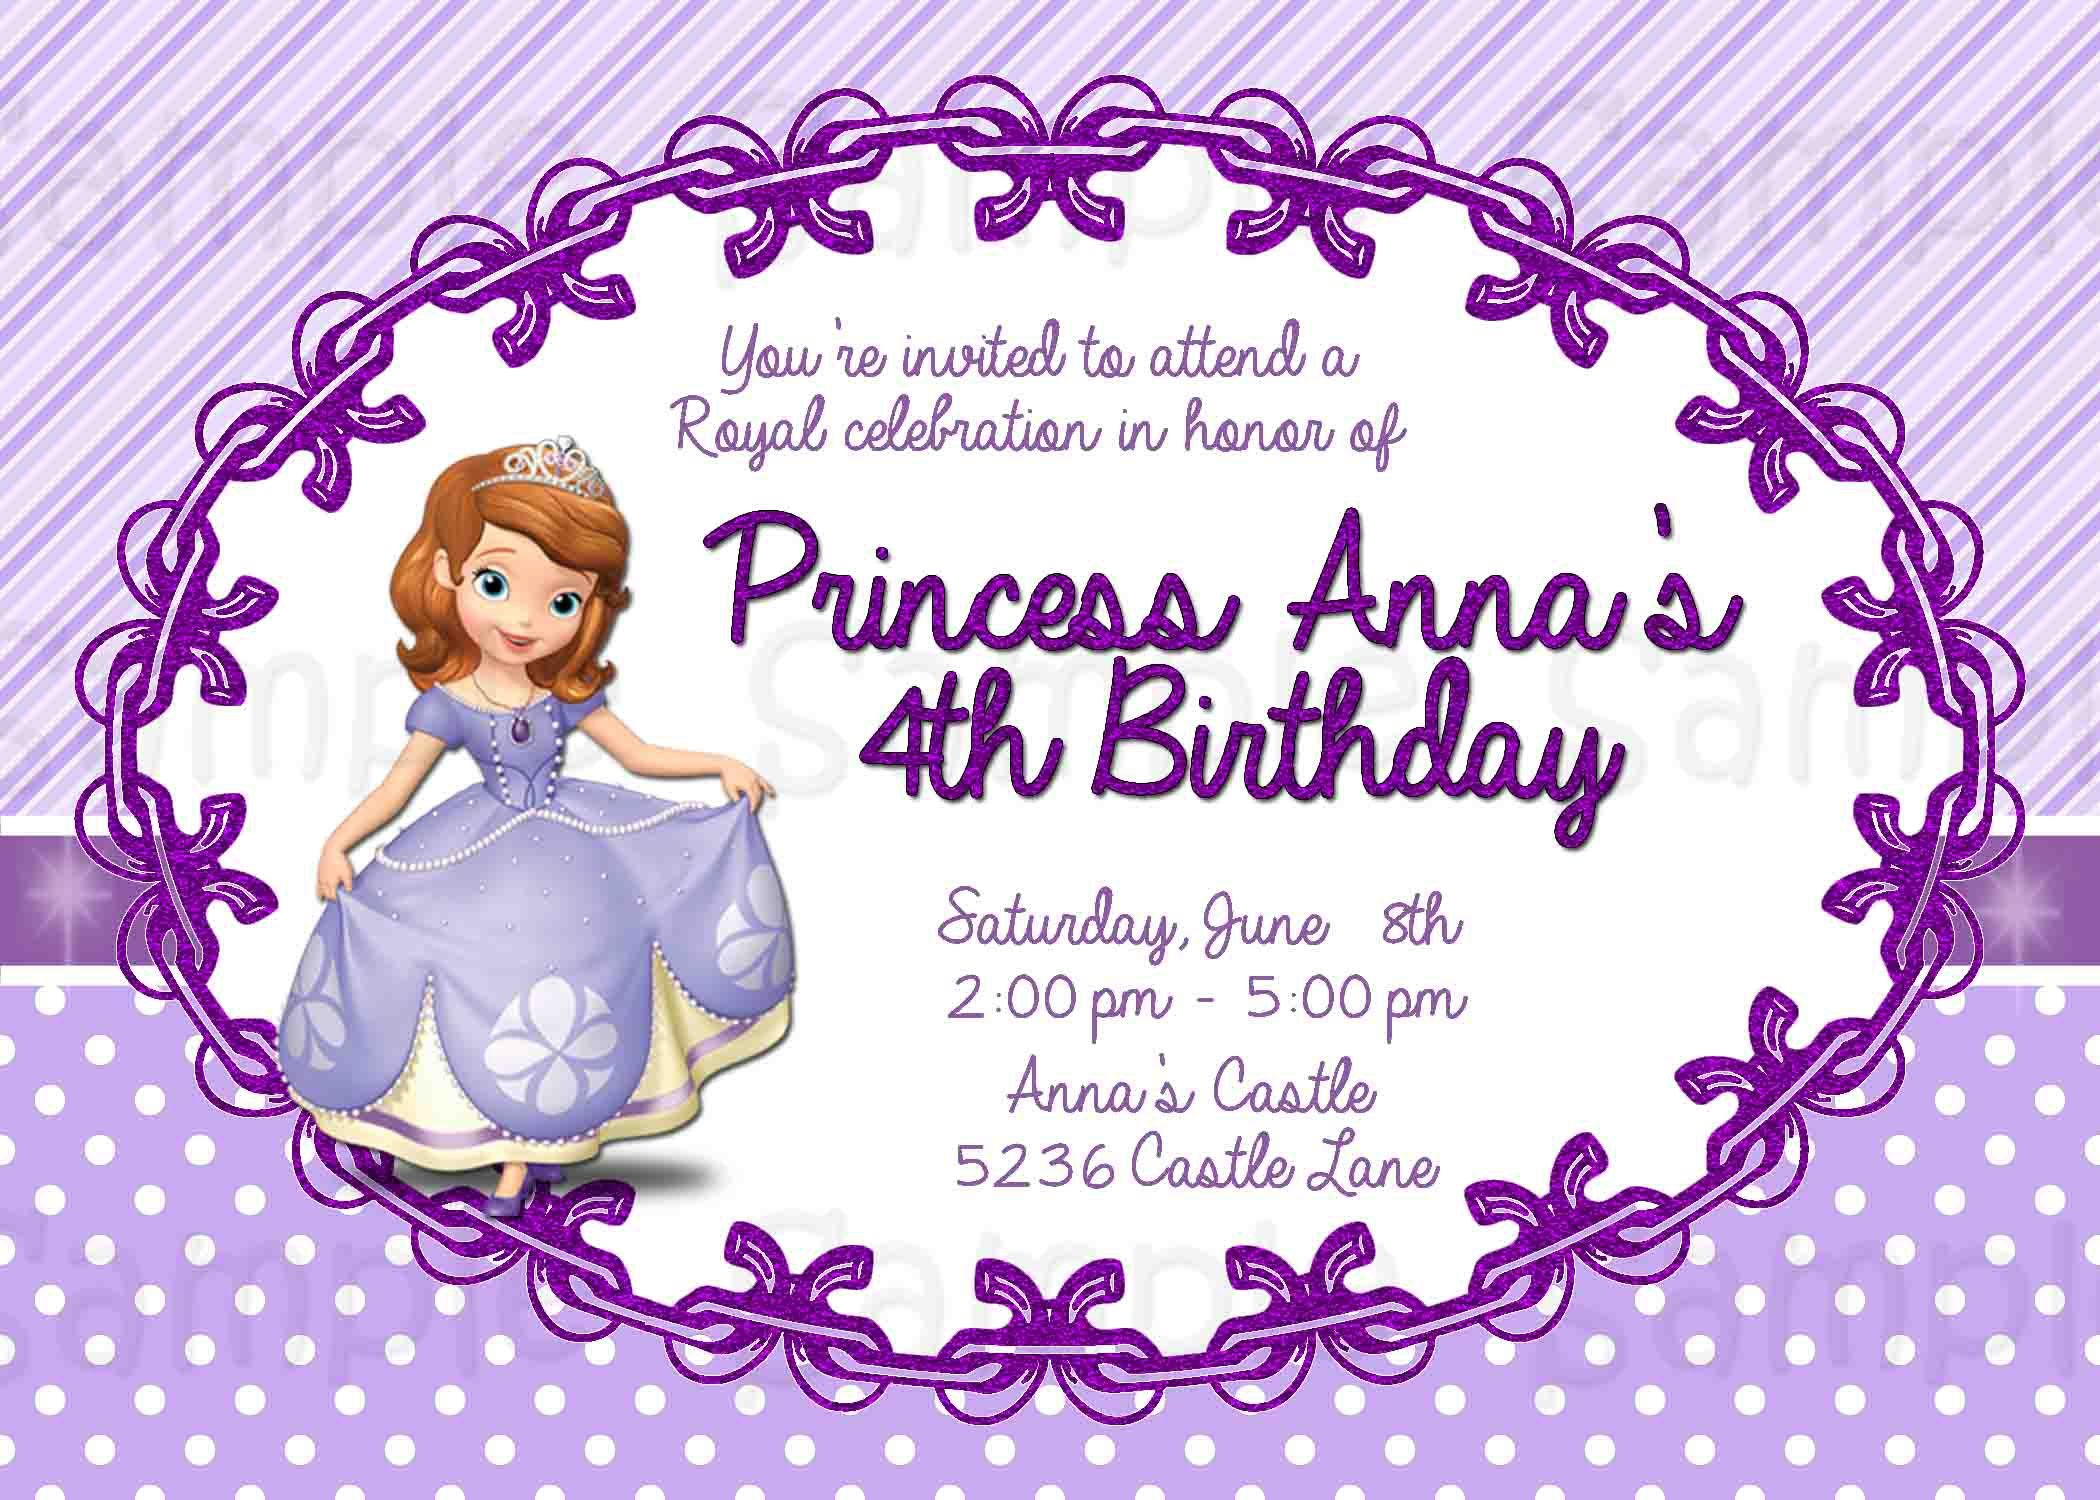 Unique Online Birthday Invitations Ideas On Pinterest Party - 1st birthday invitations girl purple